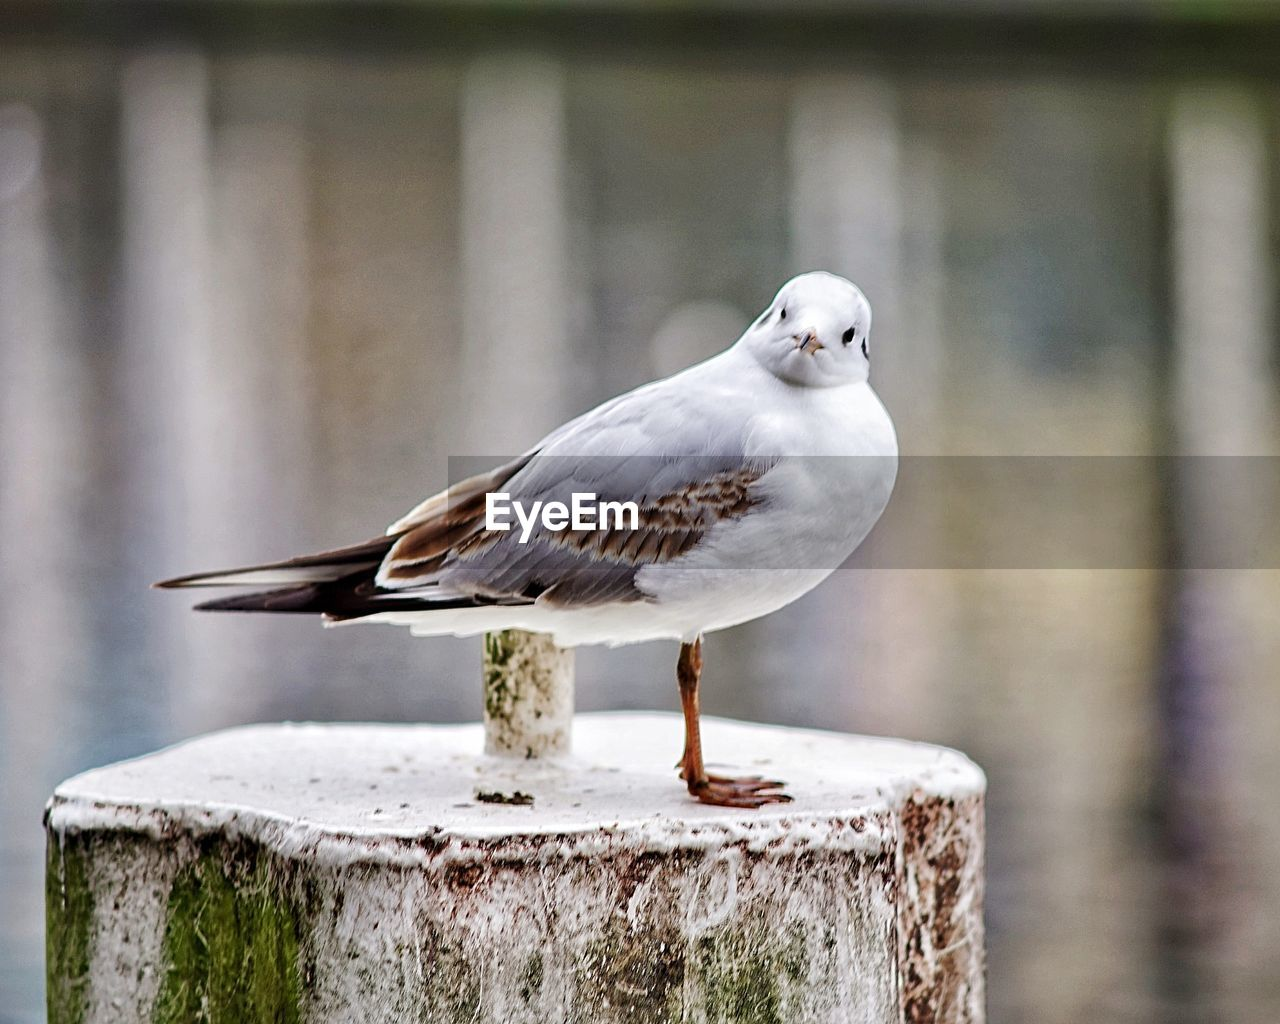 bird, perching, one animal, focus on foreground, animals in the wild, animal themes, animal wildlife, day, close-up, no people, outdoors, seagull, nature